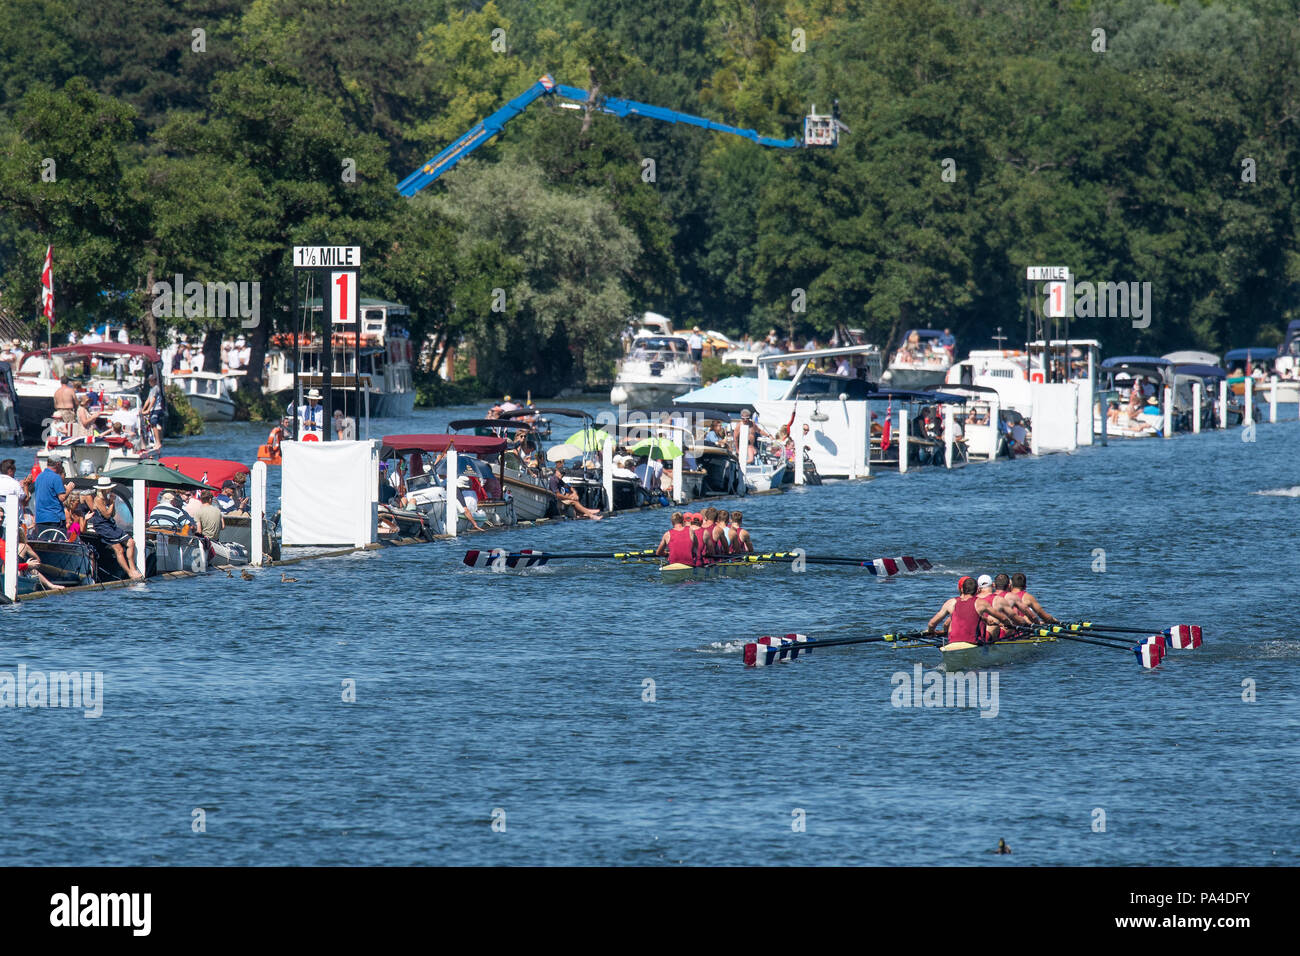 """Henley on Thames, United Kingdom, 8th July 2018, Sunday, """"The Ladies Challenge Plate"""", Oxford Brookes winning and Celebrating, the Final, """"Fifth day"""", of the annual,  """"Henley Royal Regatta"""", Henley Reach, River Thames, Thames Valley, England, © Peter SPURRIER, Stock Photo"""